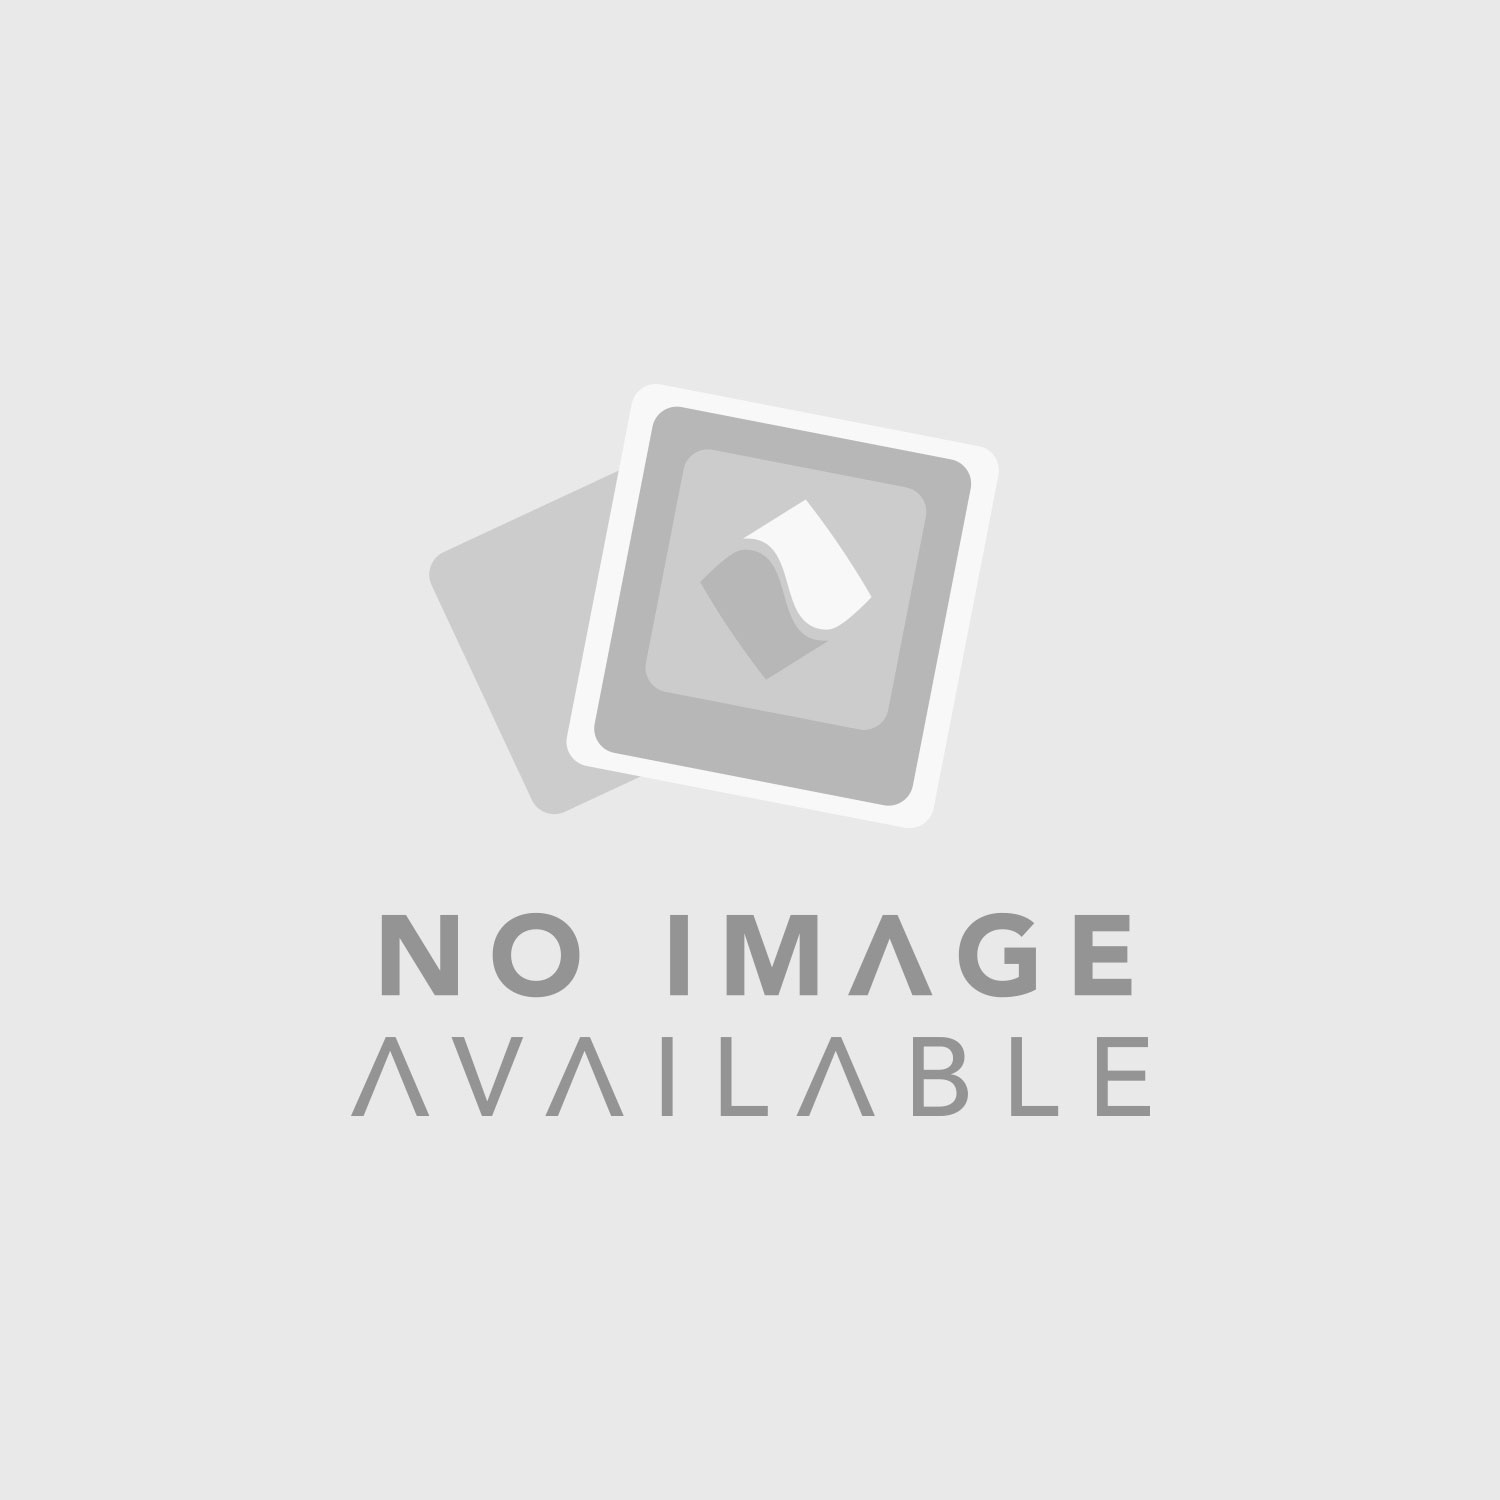 Rode RodeCaster Pro Ultimate 2 Guest Podcasting Bundle with ZDM-1 Mics (O.C. White Boom Arms)